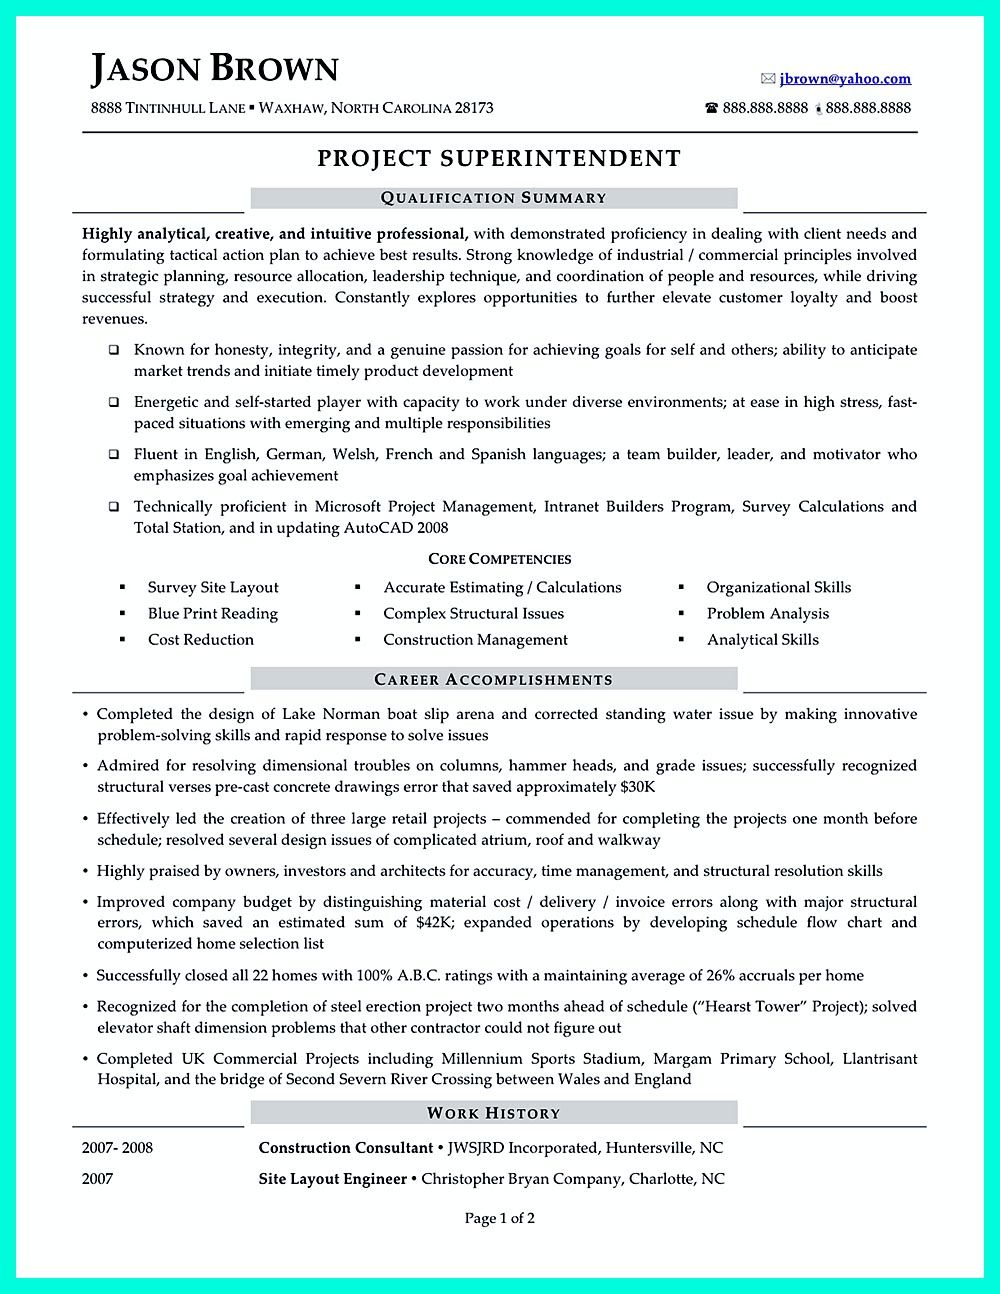 Construction manager resume can be designed for a